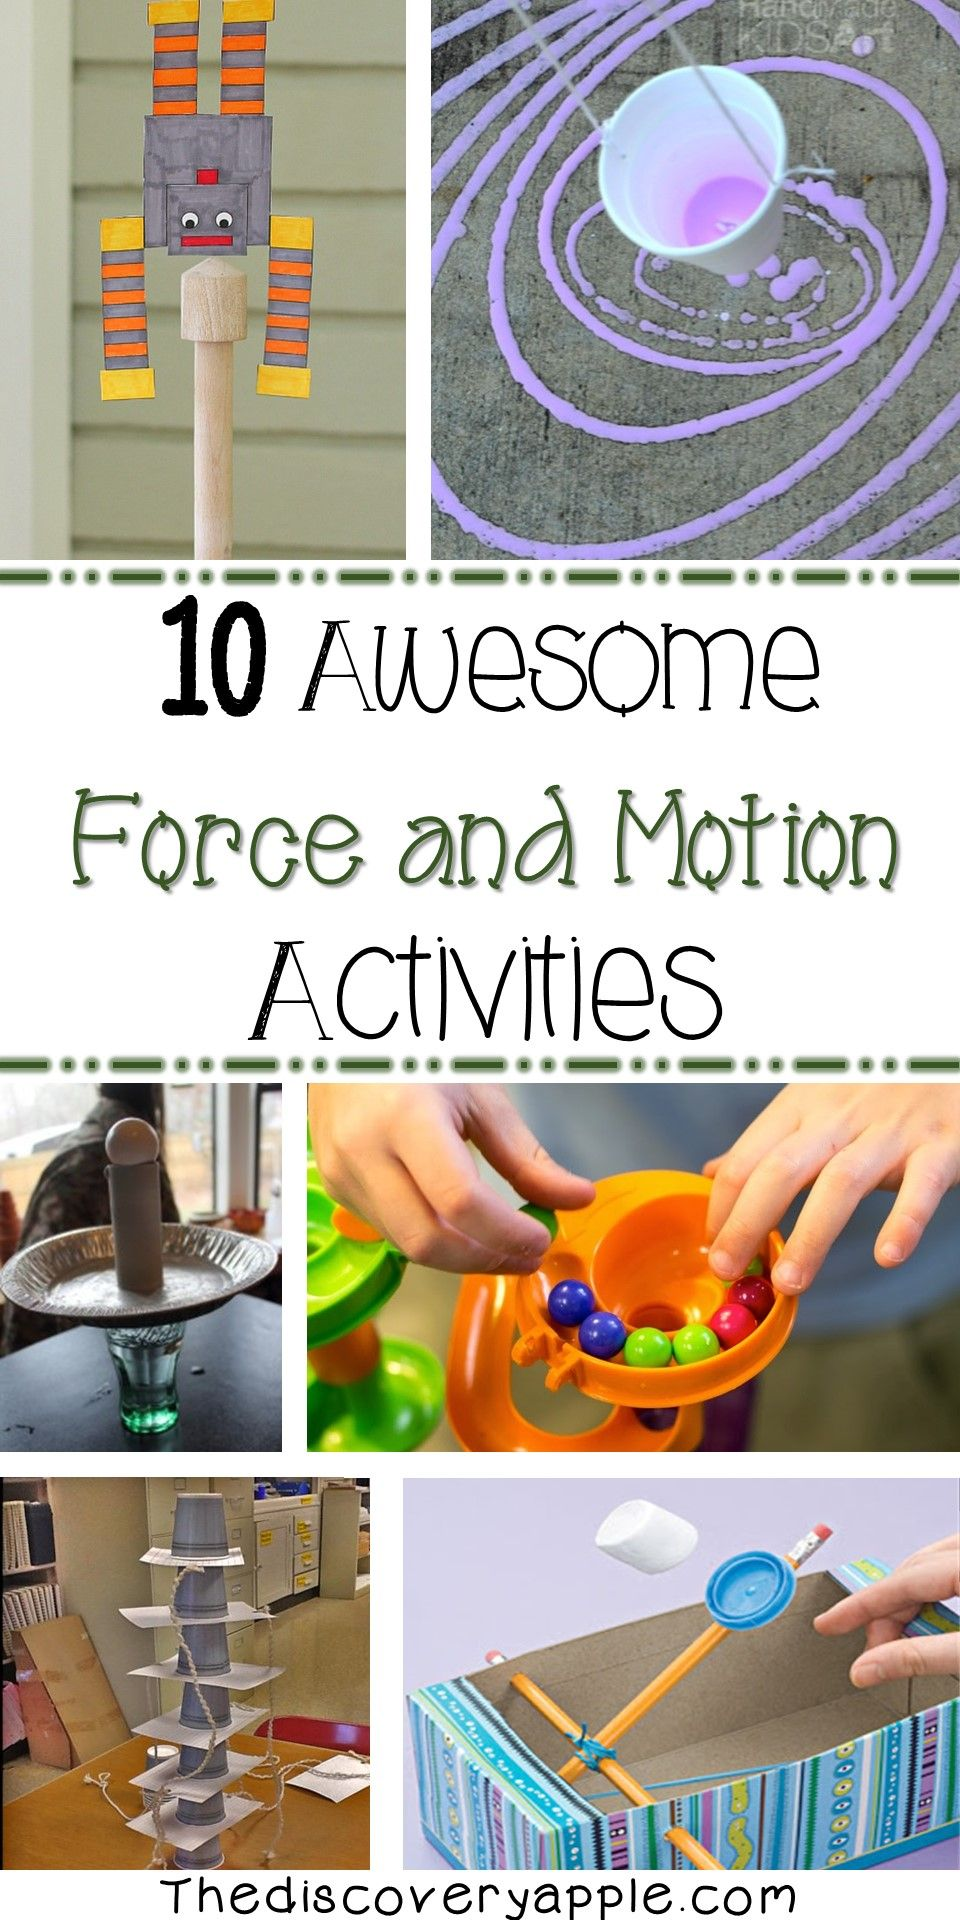 medium resolution of 10 awesome force and motion activities. Lots of great activities all in one  place!   Force and motion